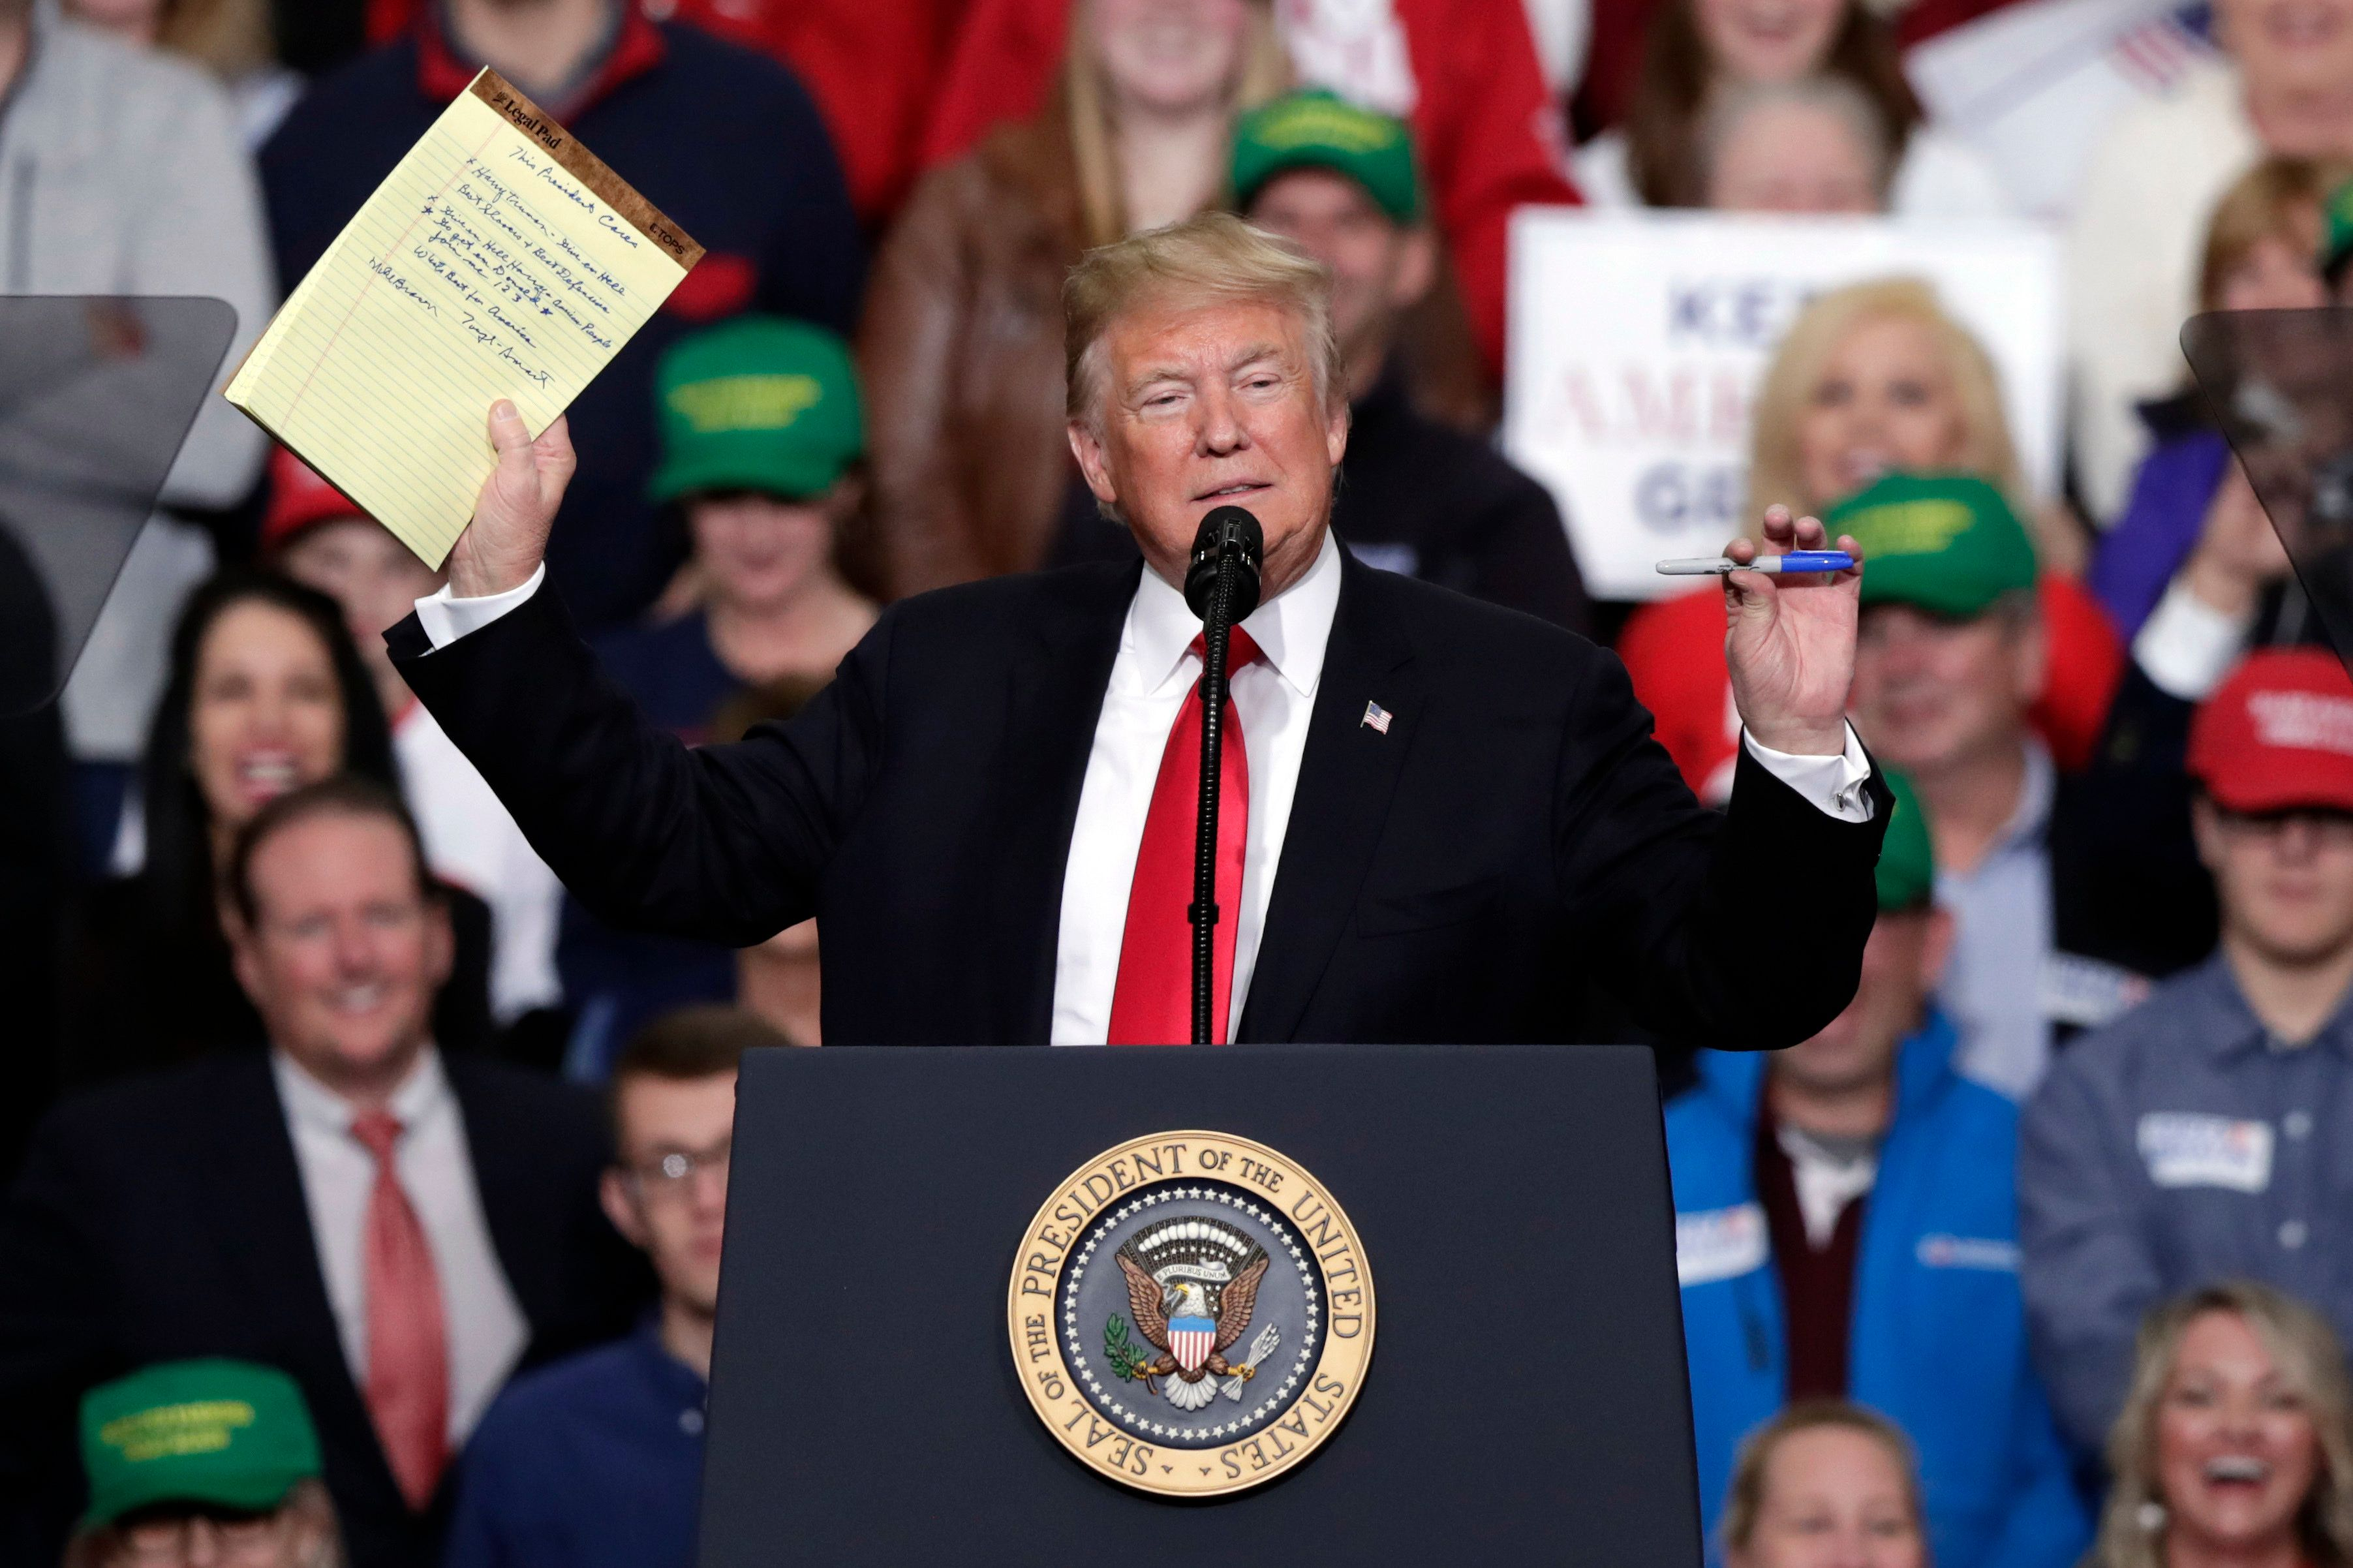 President Donald Trump shows the notes left behind by former basketball coach Bob Knight speaks at a campaign rally in Indianapolis, Friday, Nov. 2, 2018. (AP Photo/Michael Conroy)